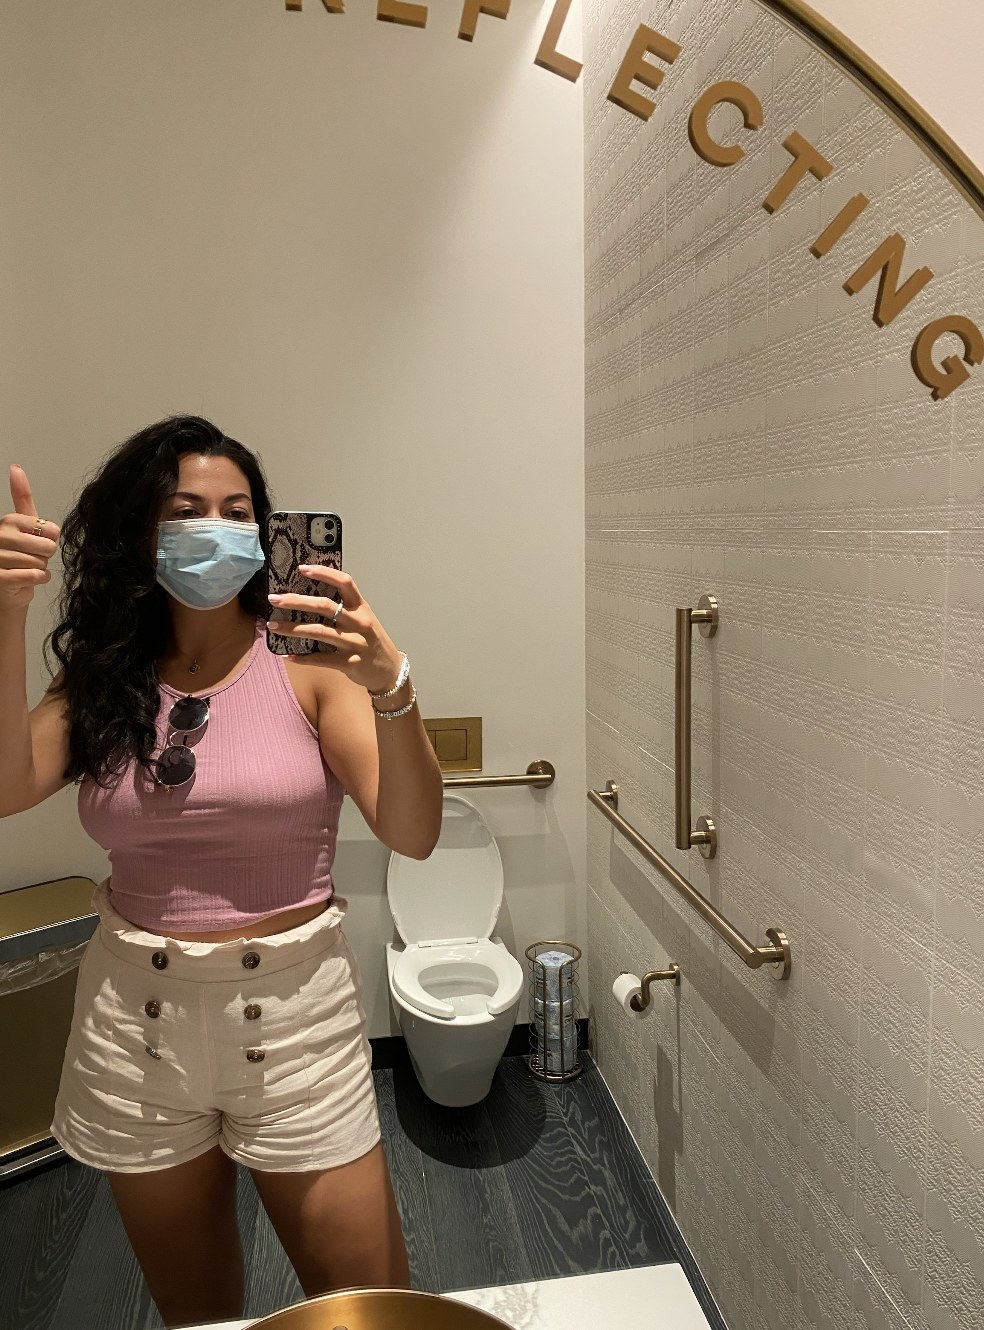 A mirror selfie of the author at the acupuncture center